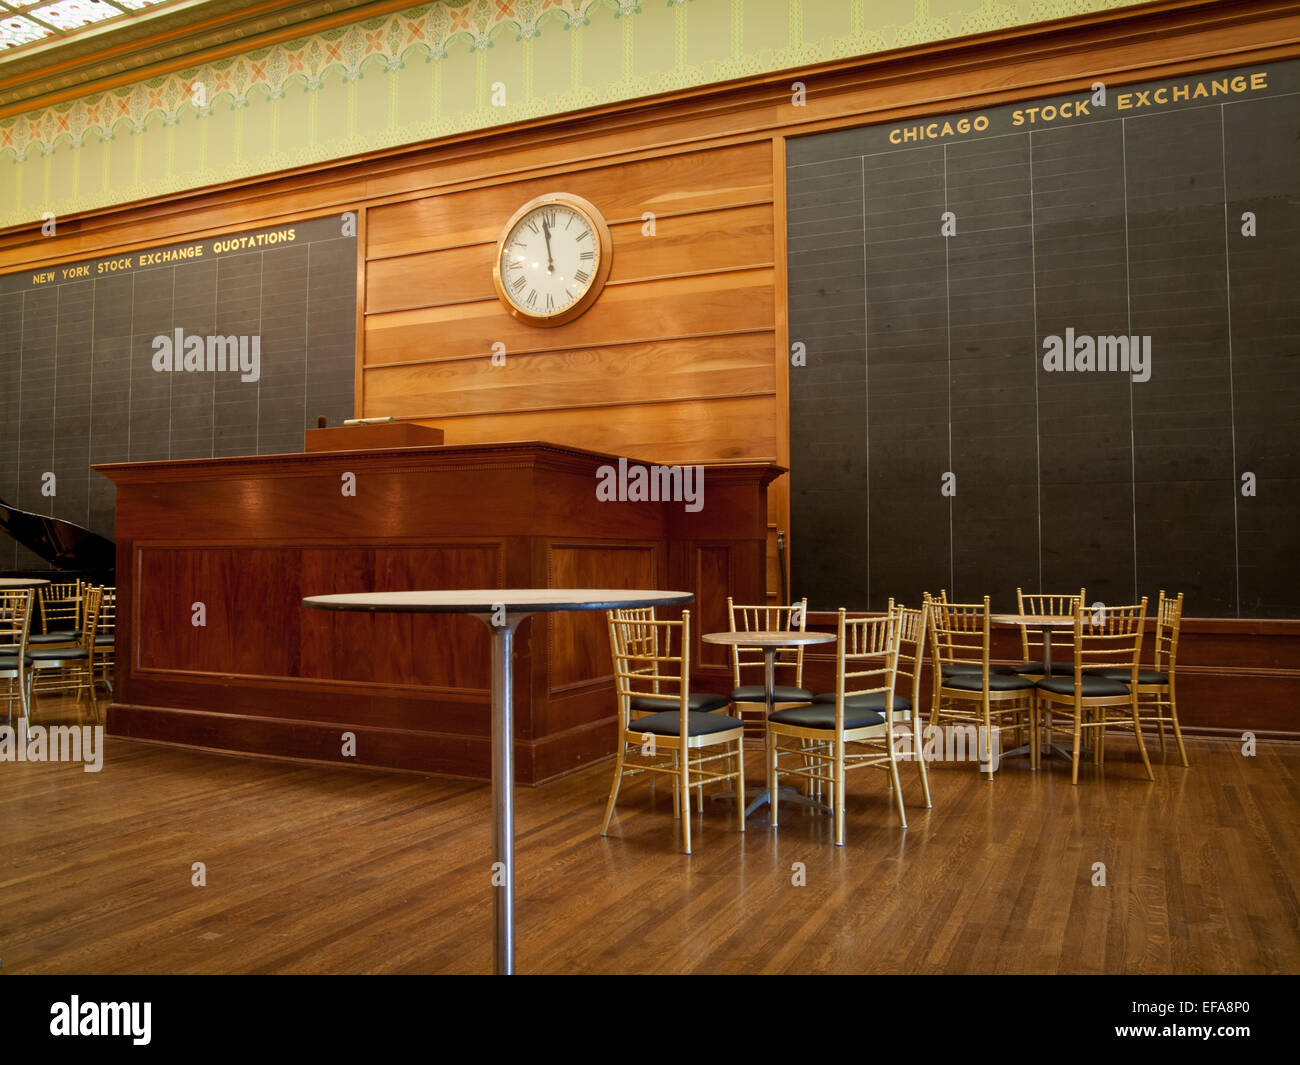 The reconstruction of the Chicago Stock Exchange Trading Room at the Art Institute of Chicago. - Stock Image